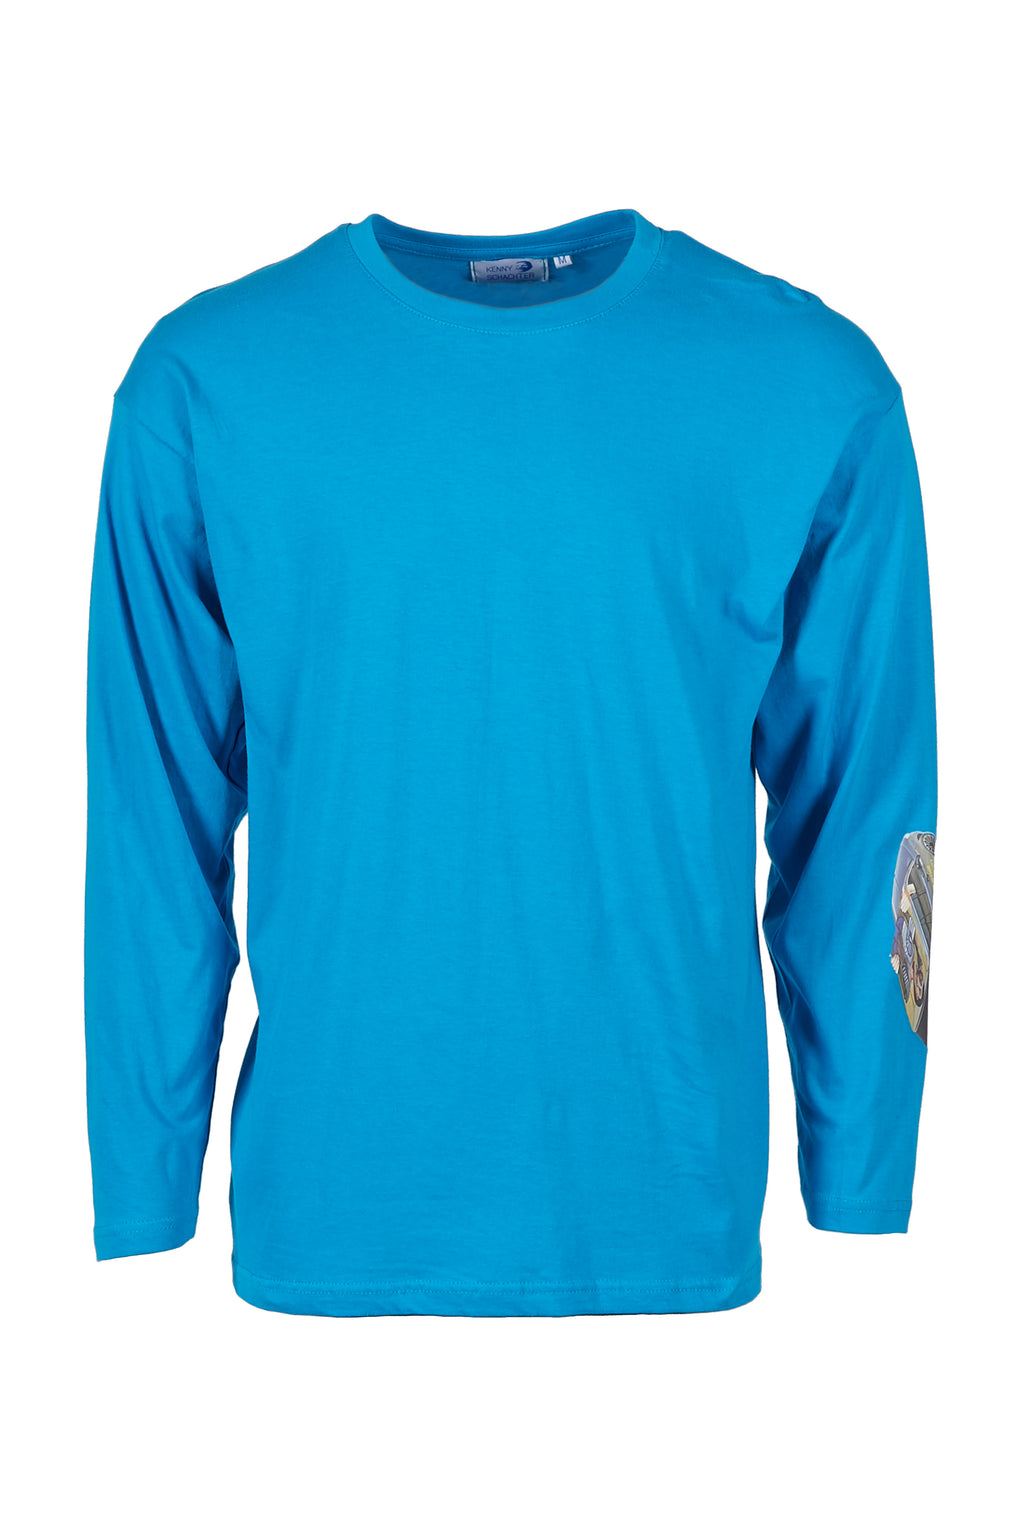 Kenny Schachter 'Art Transport' Long Sleeve Top